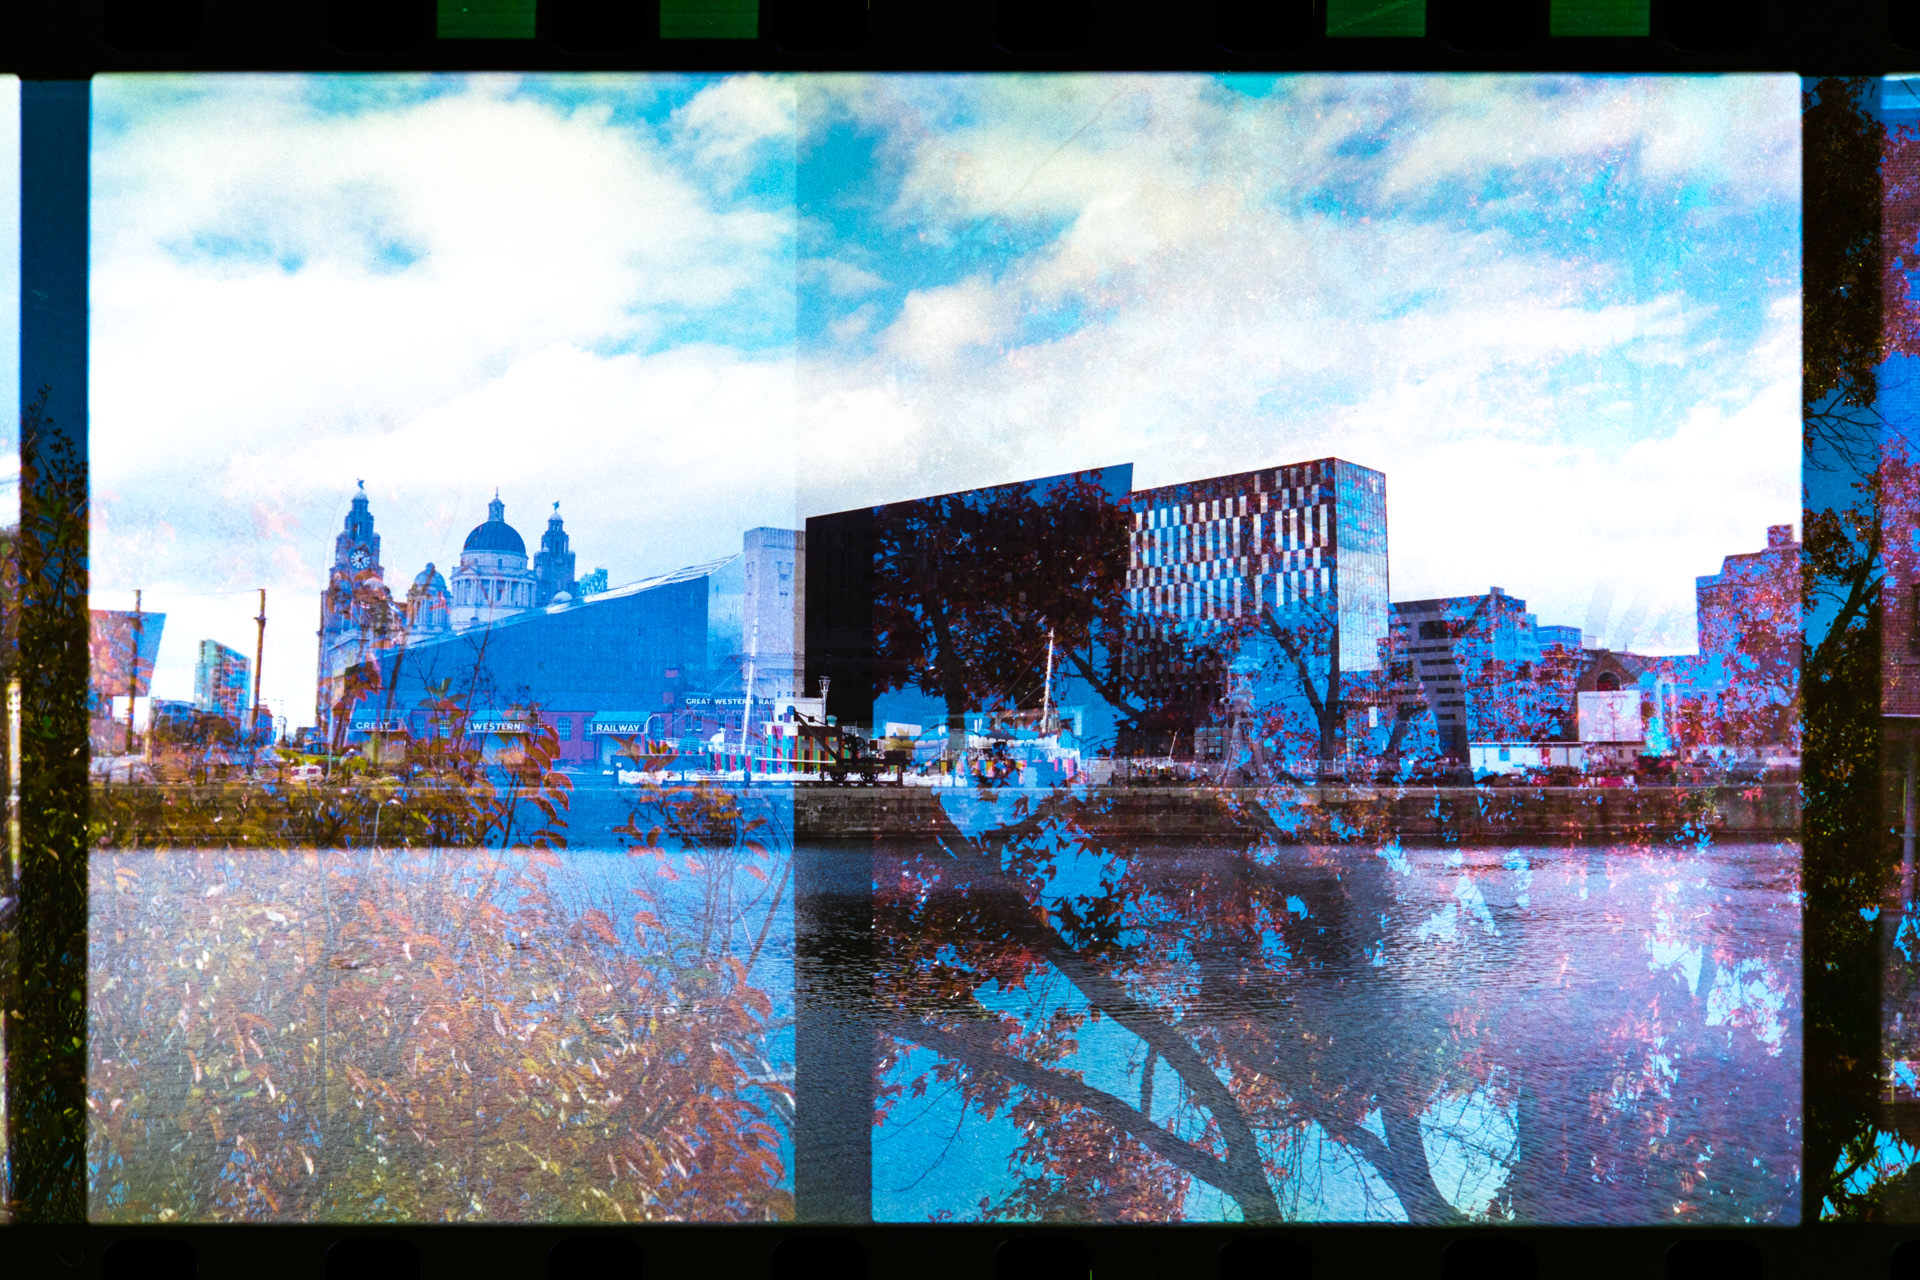 Liverpool's waterfront combined with autumnal/winter leaves.